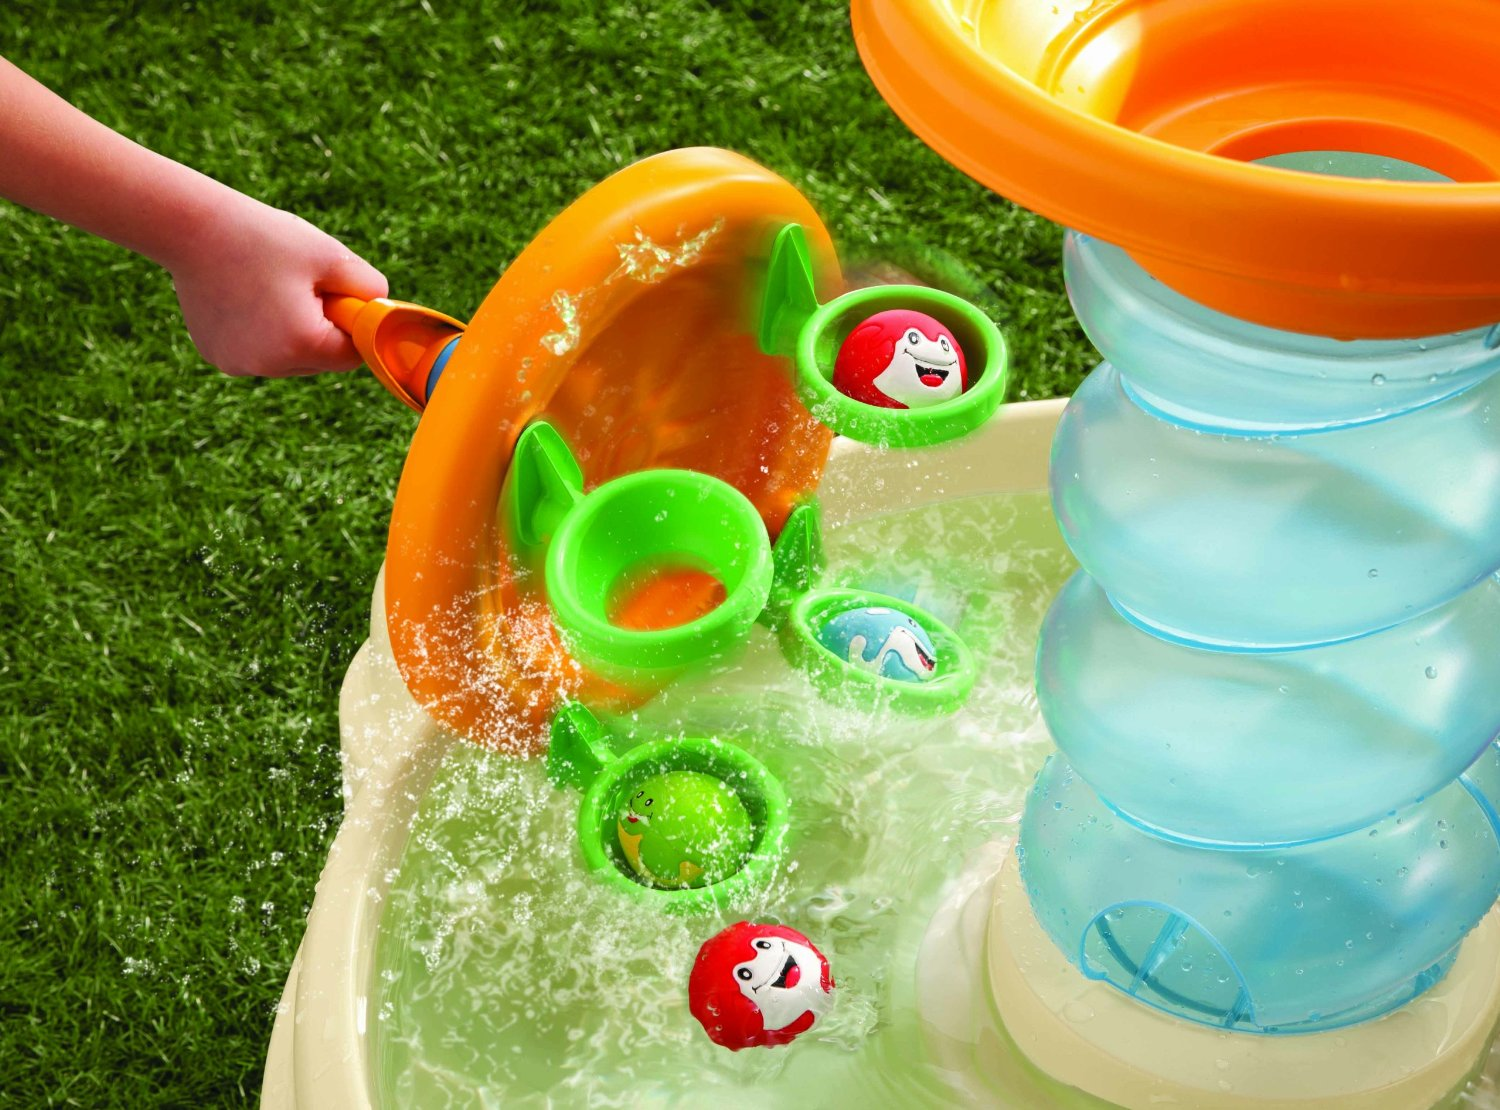 Frog Water Table For Little Tikes Replacement Parts : Creative water activities for kids